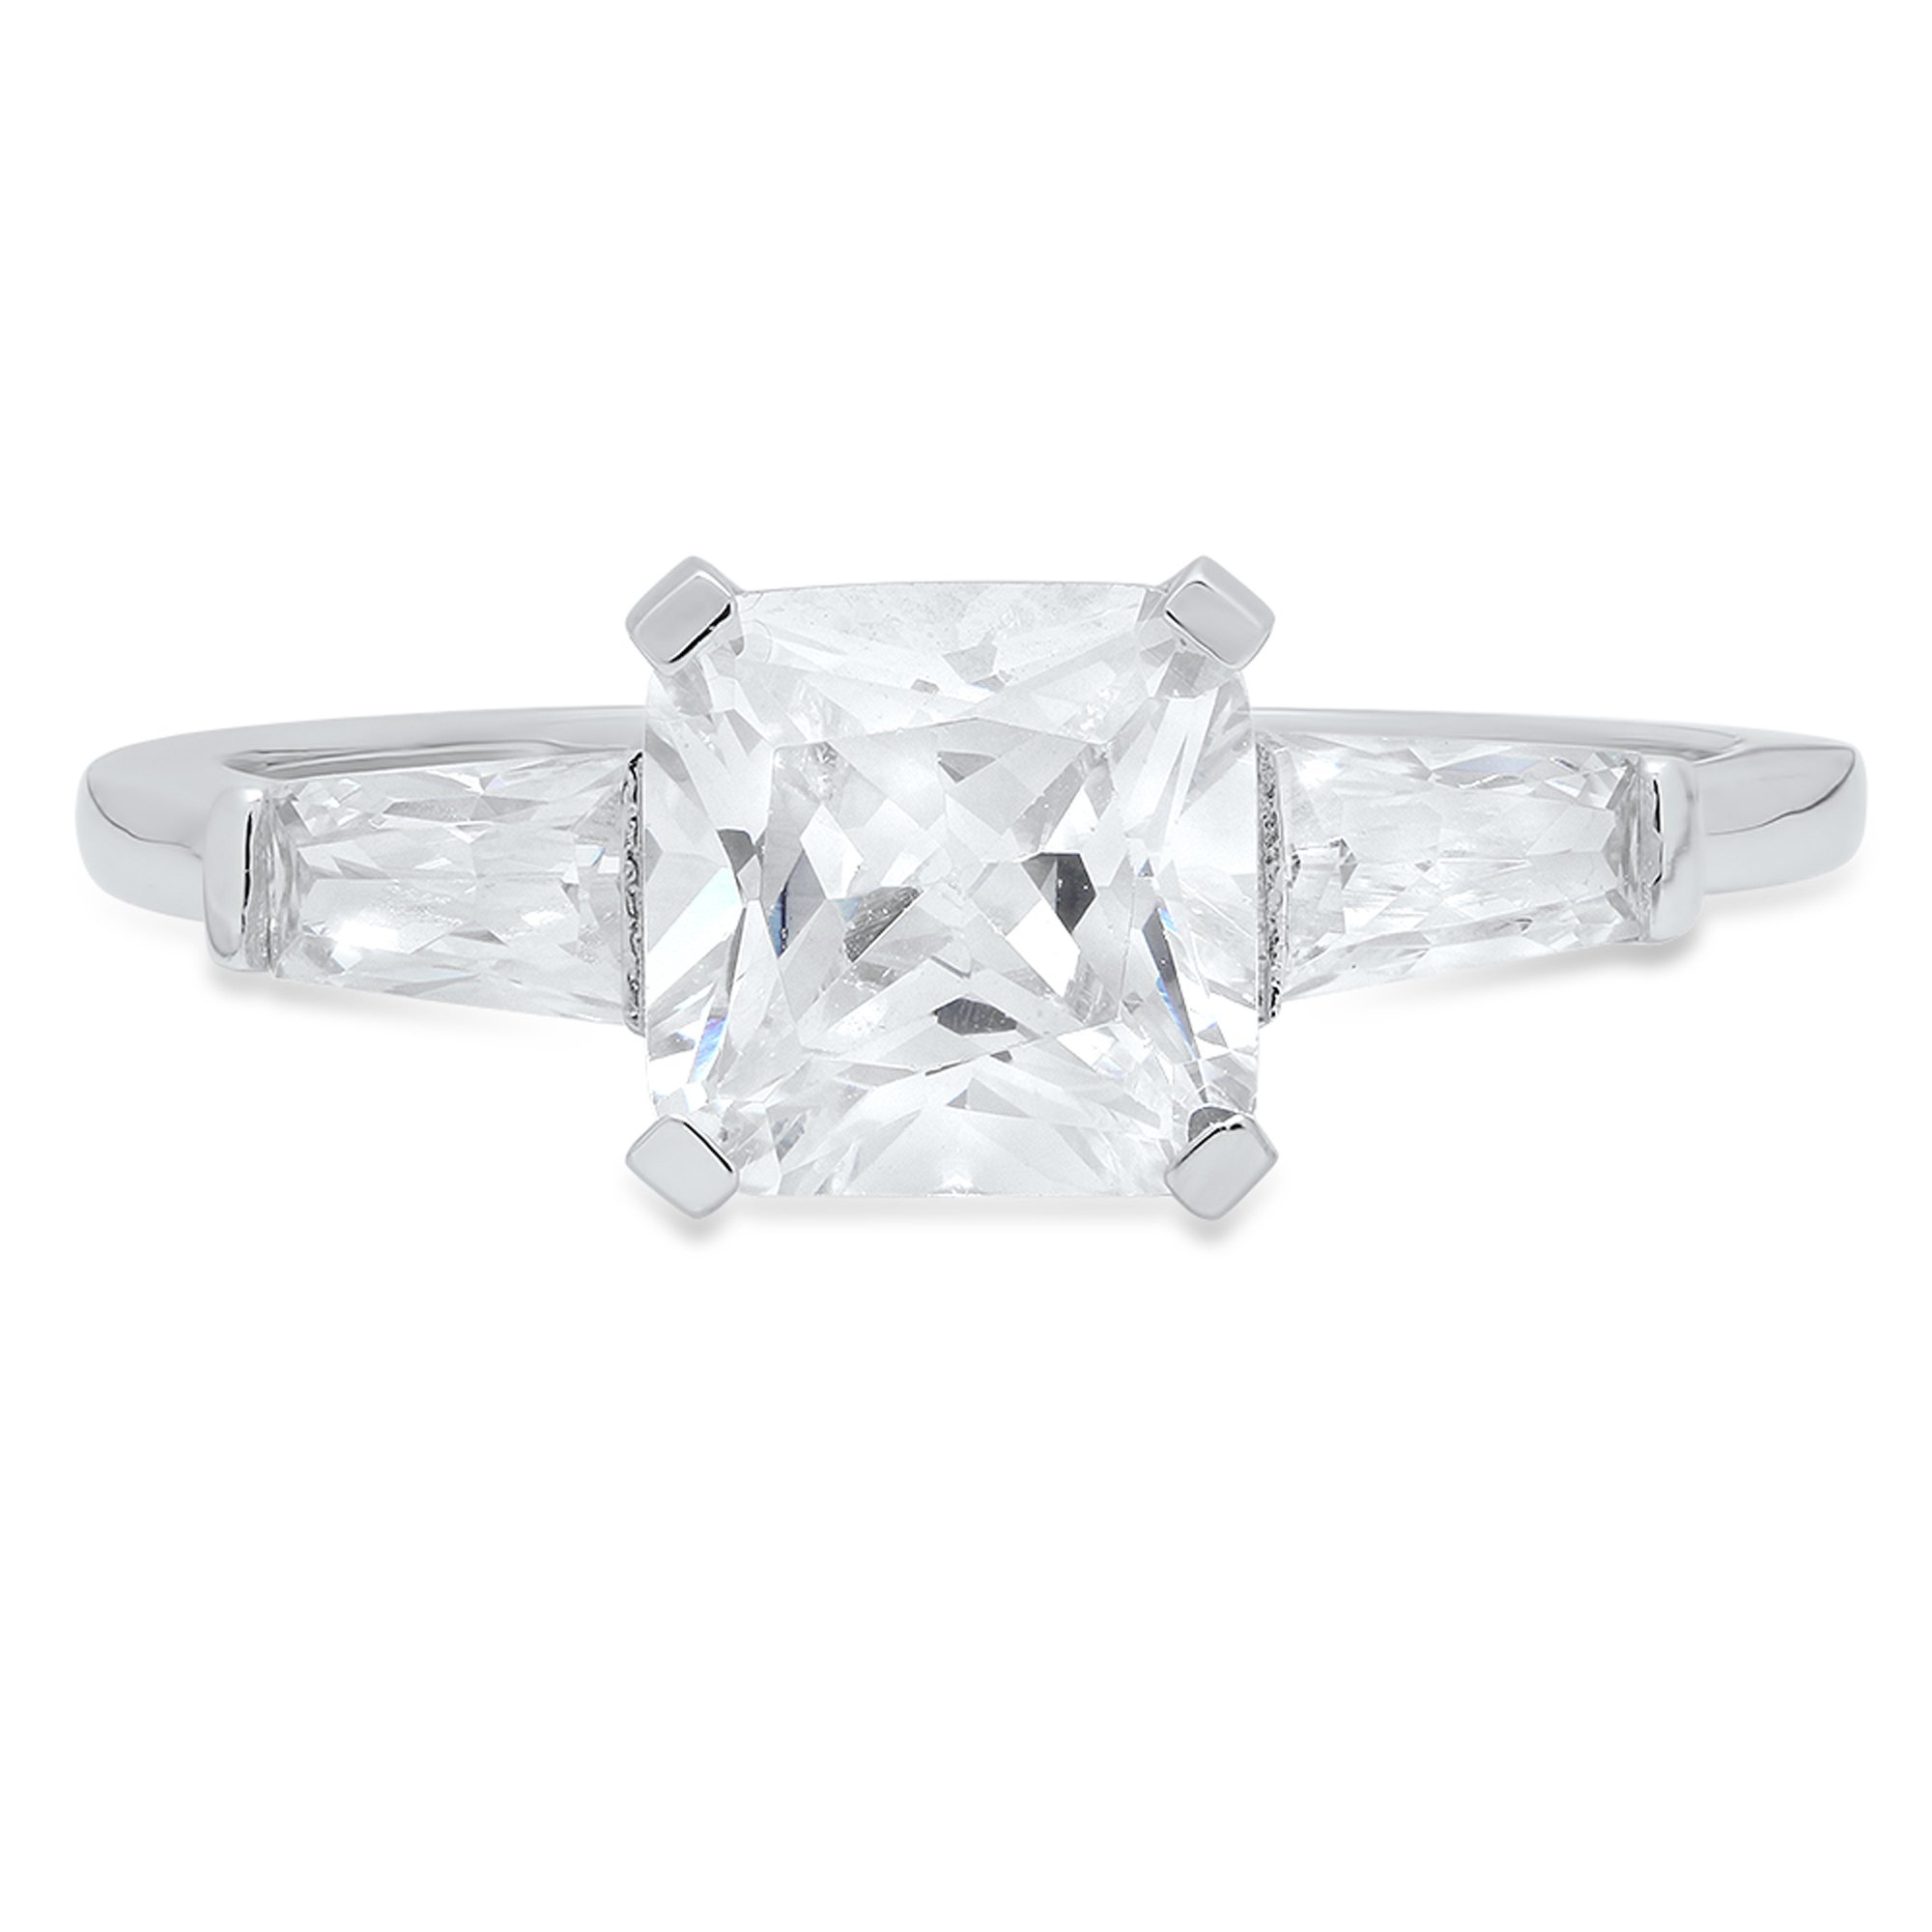 Clara Pucci Square Emerald&Baguette Cut Solitaire 3-Stone Engagement Wedding Promise Ring 14K White Gold, 1.47CT, Size 11